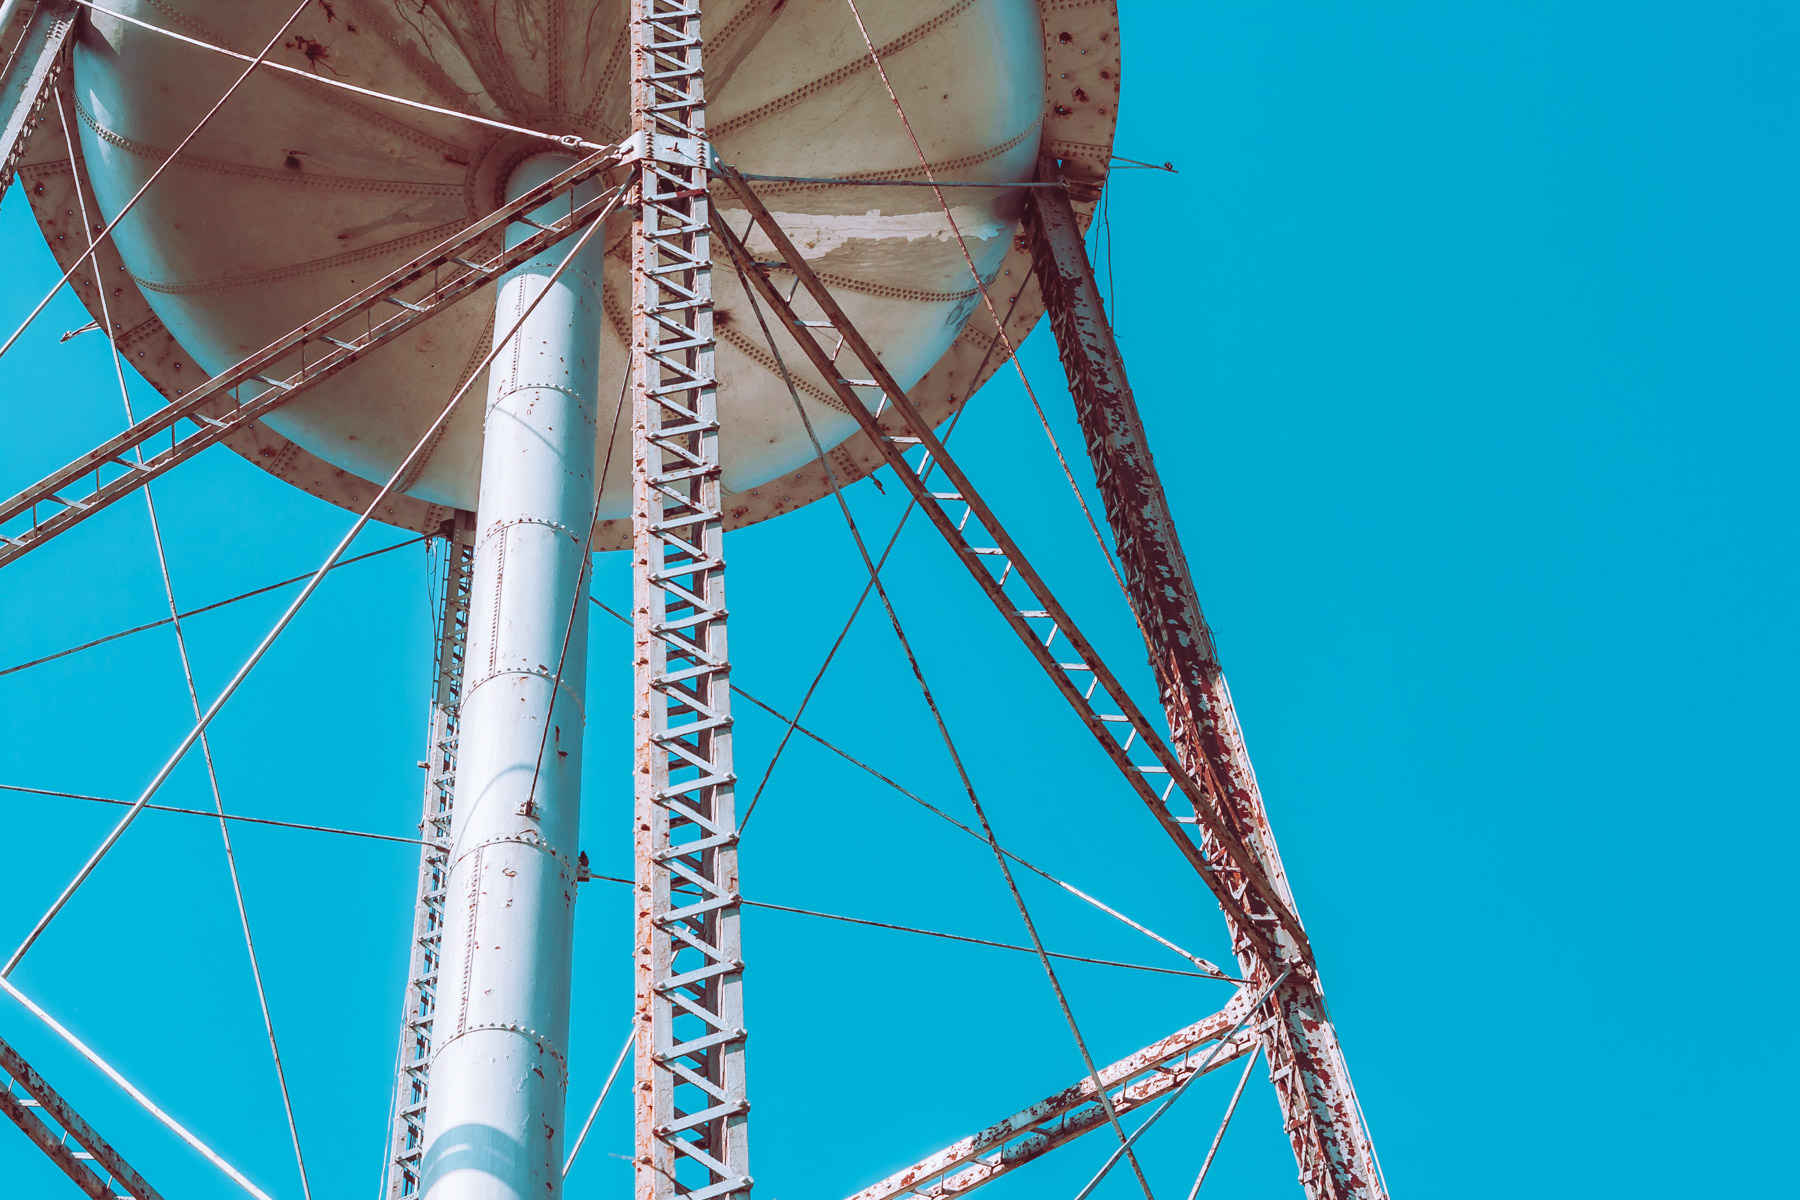 Detail of a water tower spotted in Pilot Point, Texas.